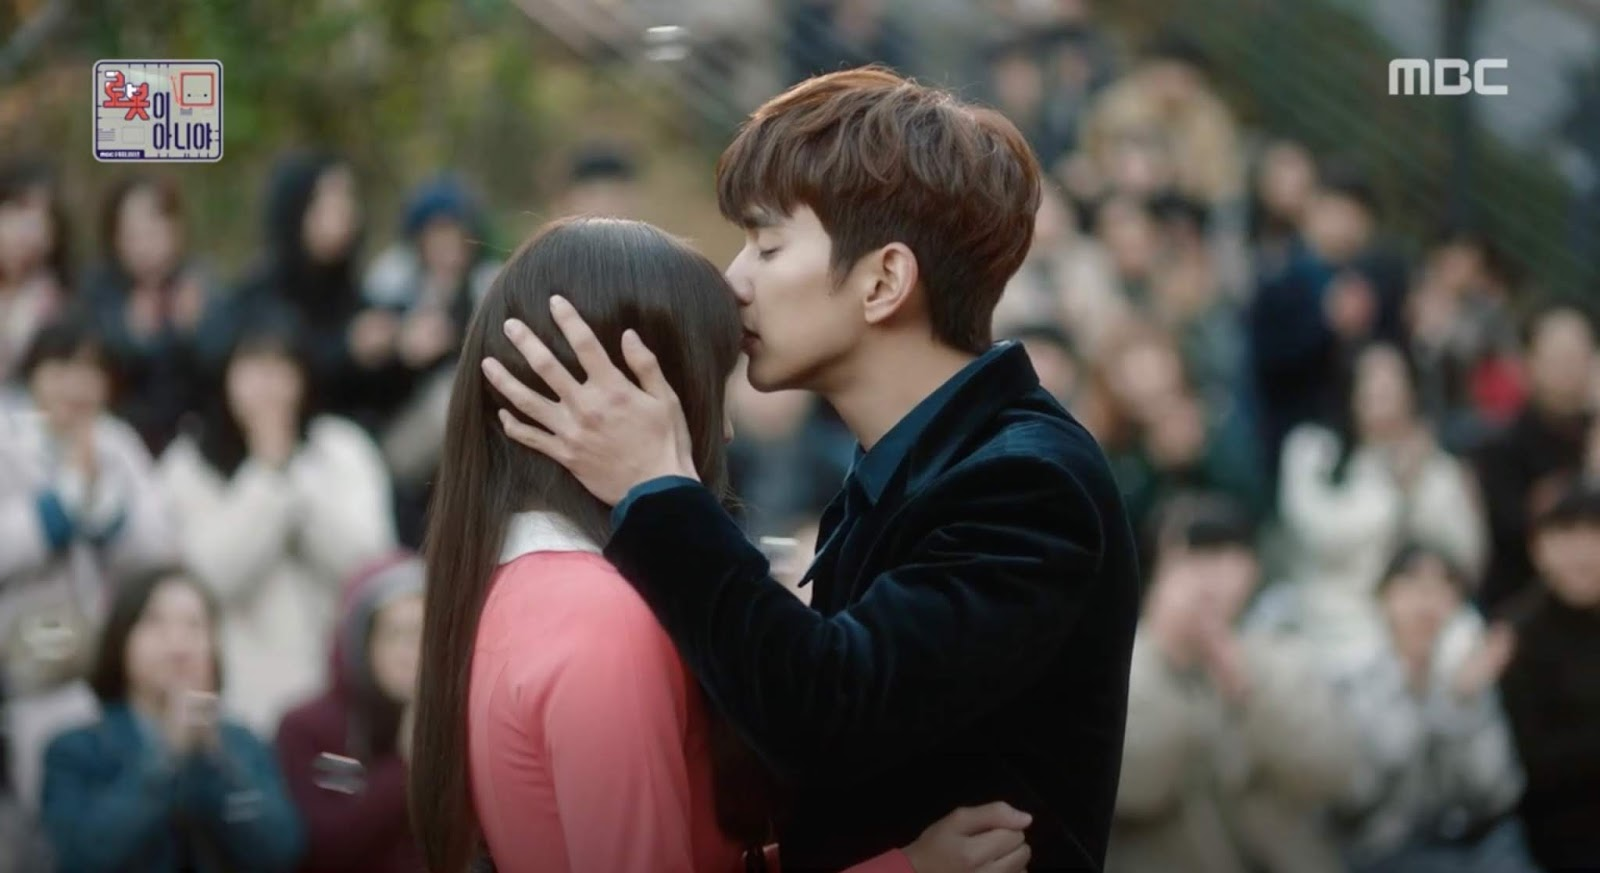 Kpop,Kdramas, and a Crazy Fan: At What Point do Underrated Kdramas